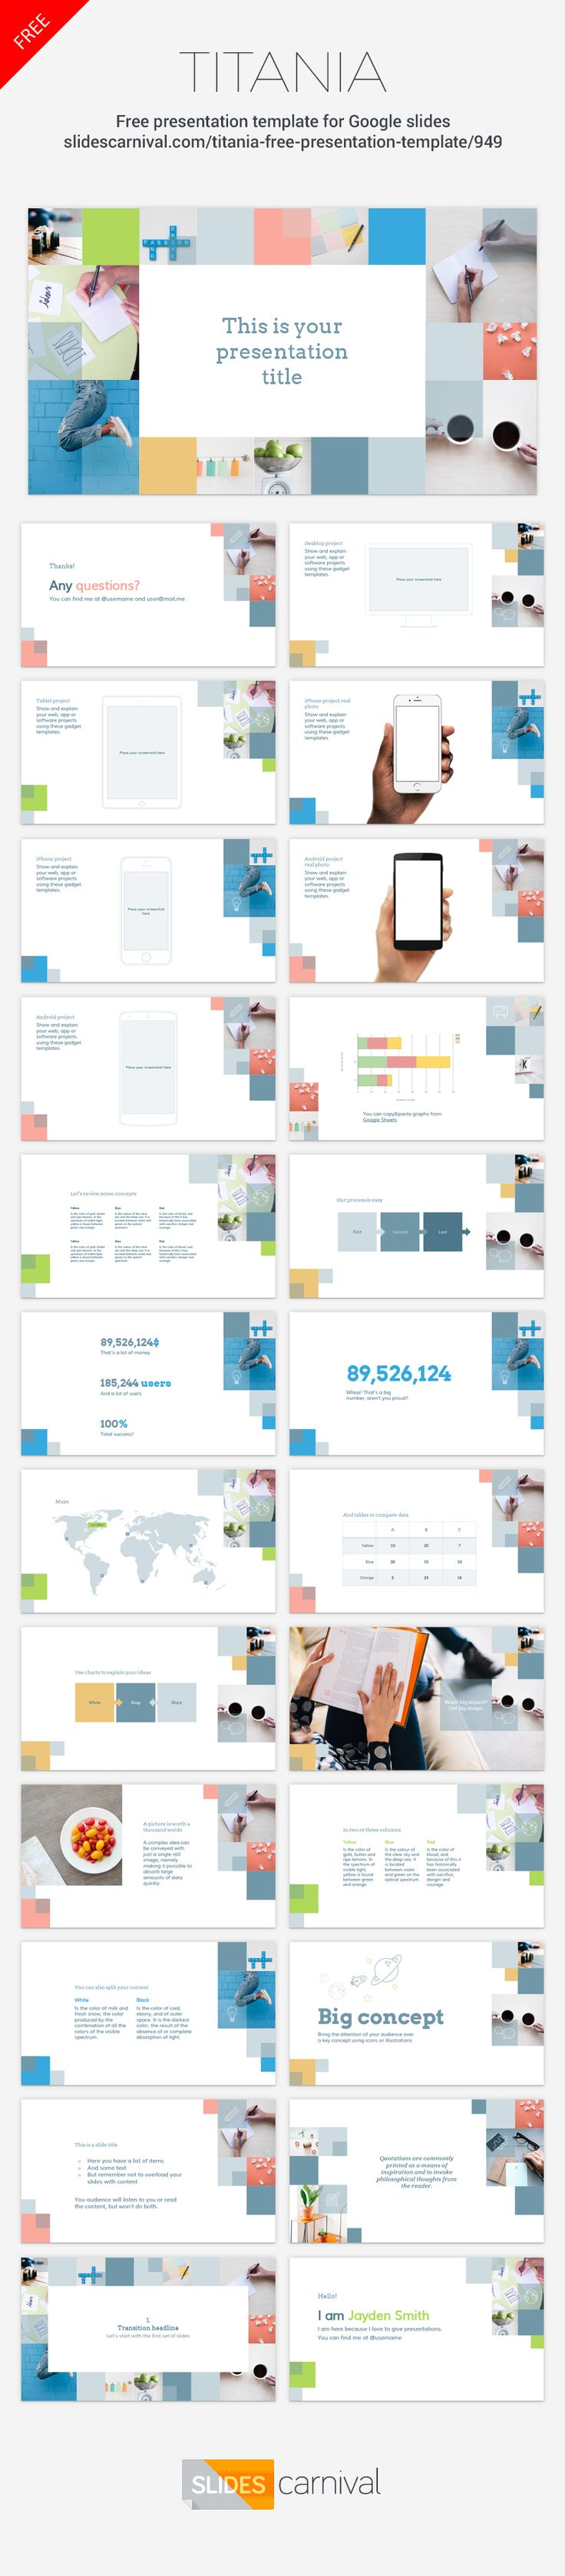 best ideas about presentation topics interesting positive colorful and professional this presentation template suits a great variety of topics works great for presentations that are going to be